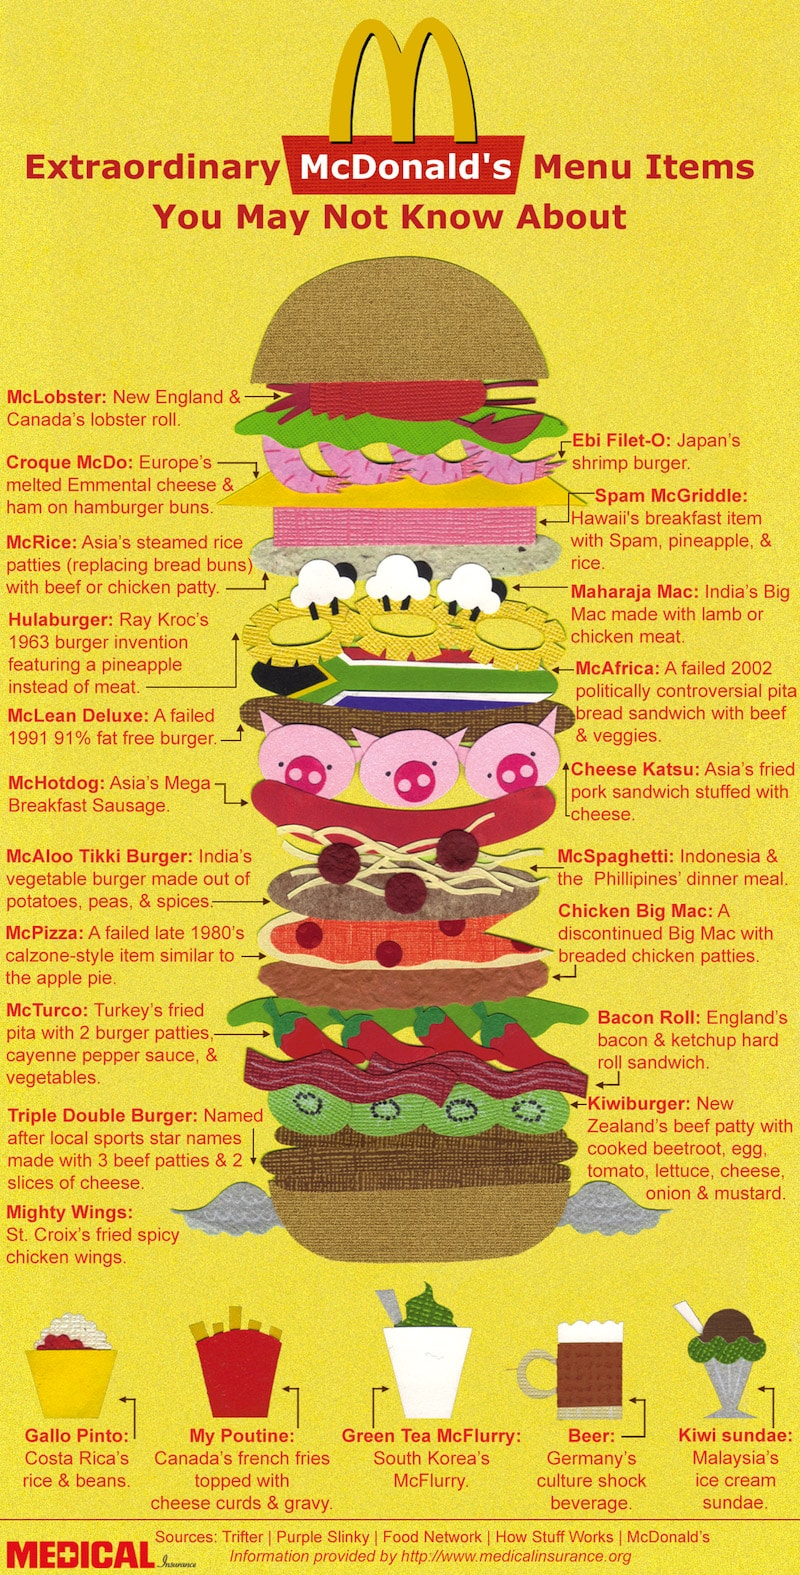 McDonald's Menu Items You Didn't Know About [Infographic]